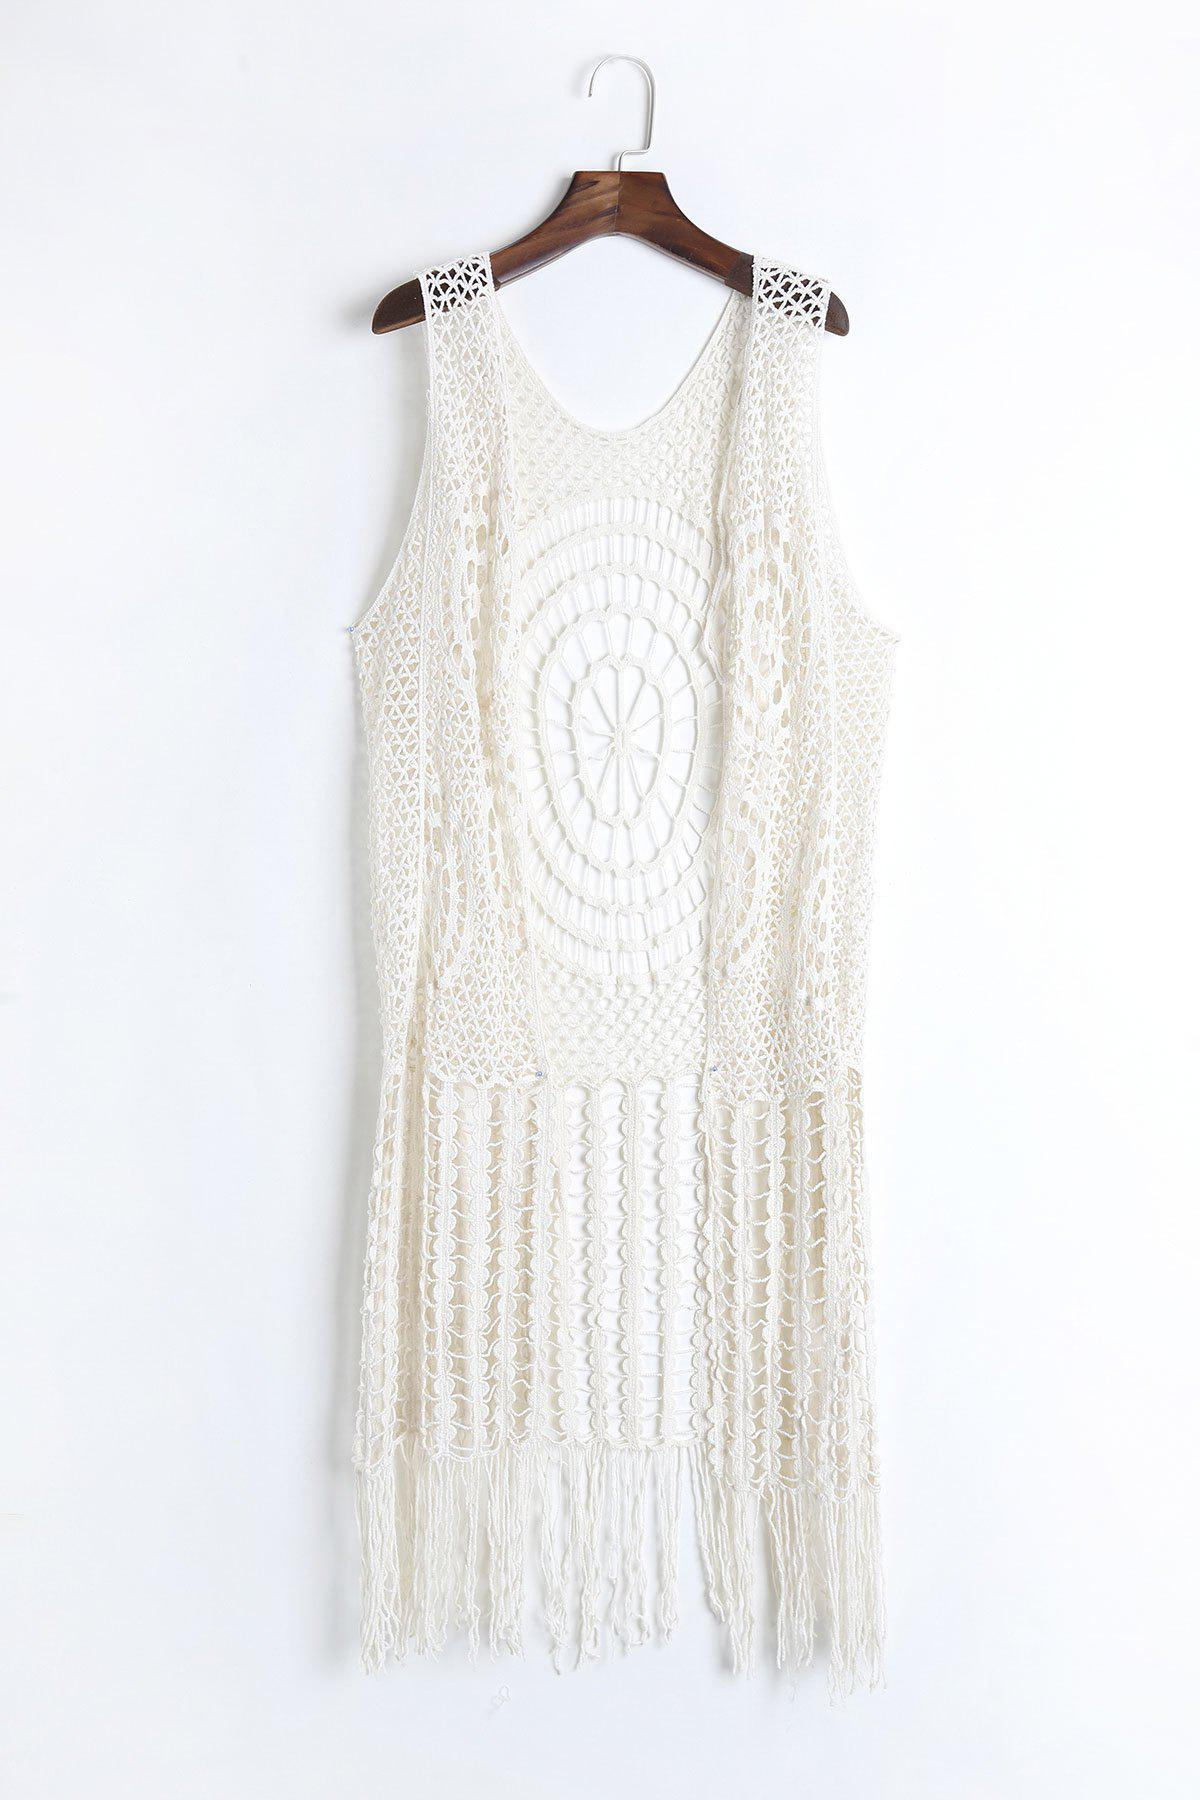 Bohemian Fringed Sleeveless Cut Out Women's Cover Up - OFF WHITE ONE SIZE(FIT SIZE XS TO M)